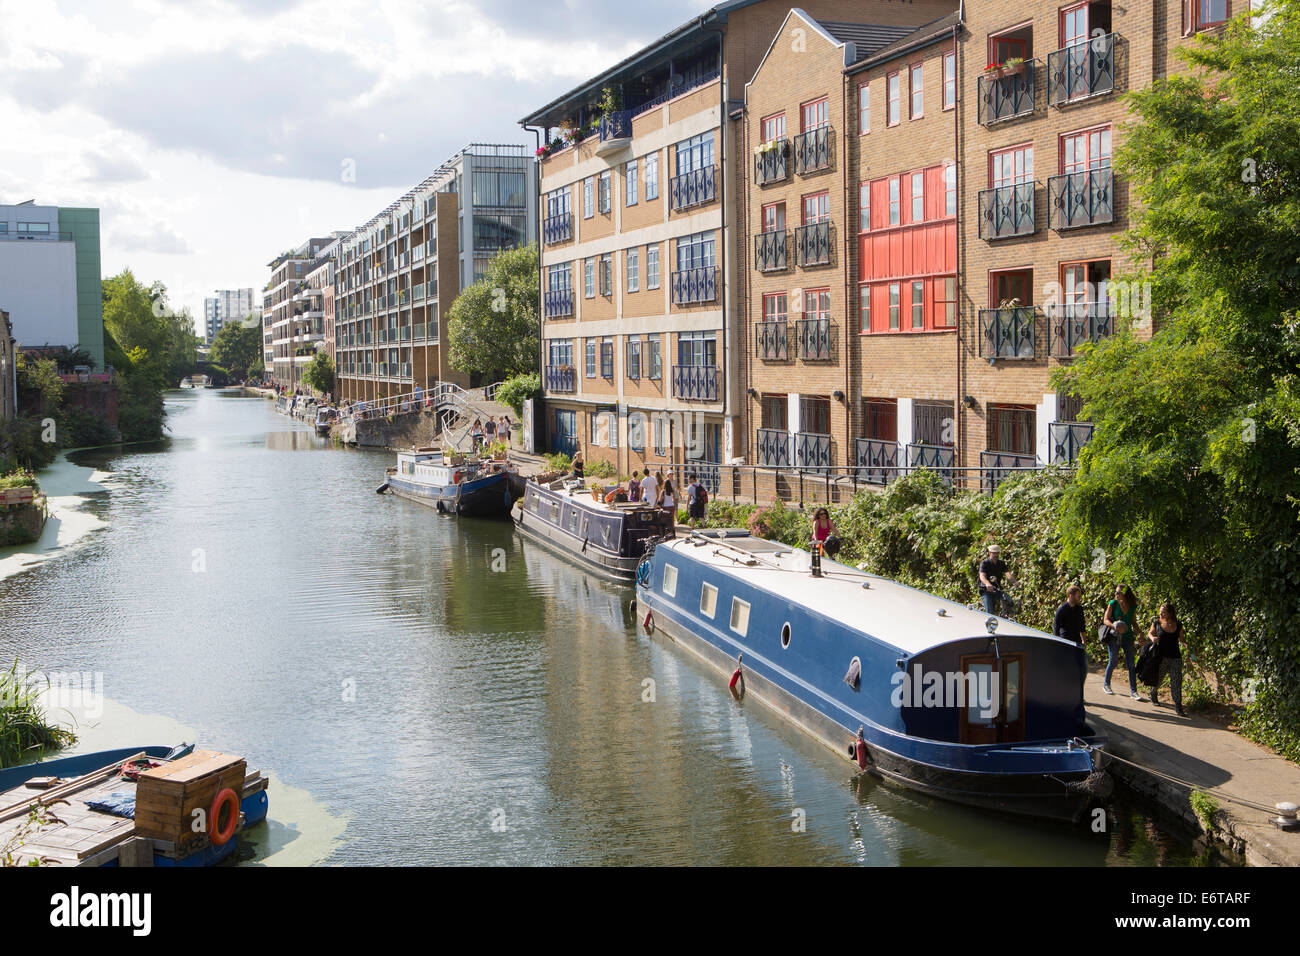 Narrowboats on the Regent's Canal near Camden - part of the Grand Union Canal, London, England - Stock Image